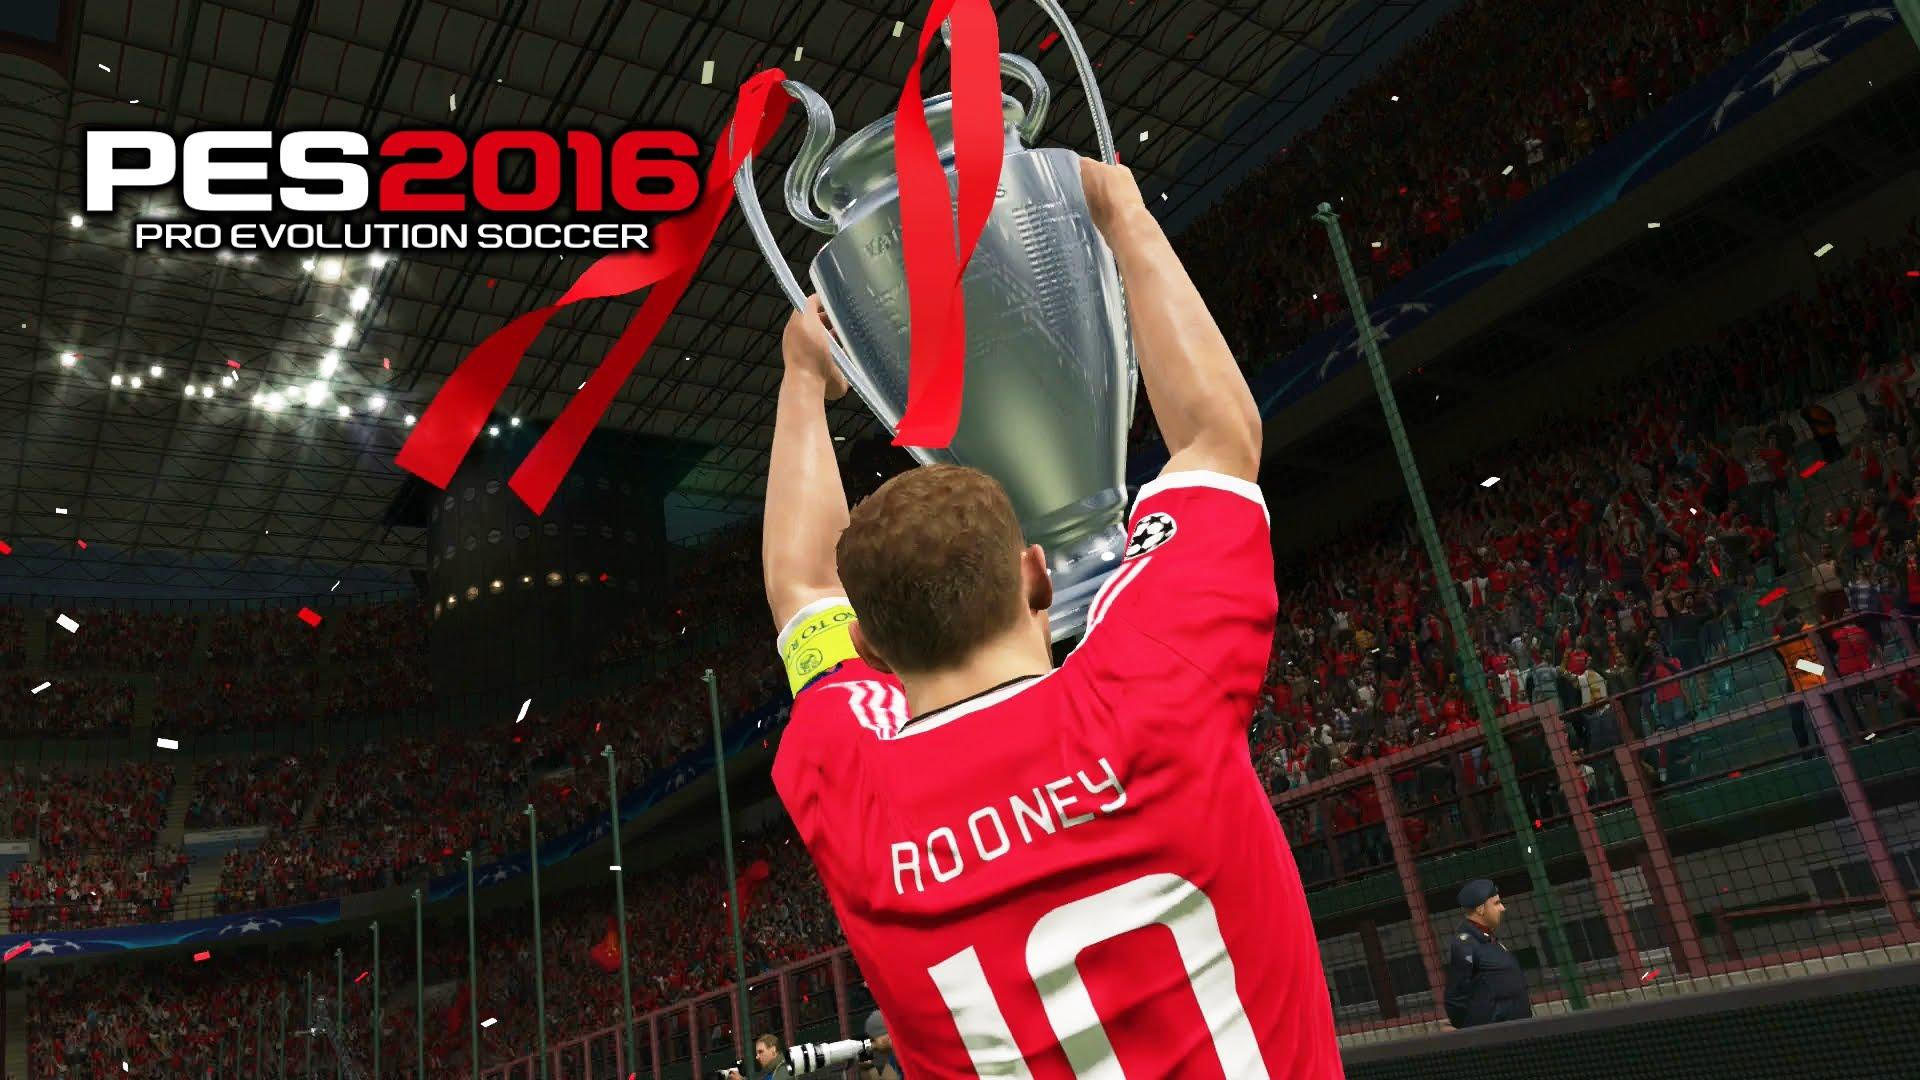 PES 2016 Final Champions League Barcelona vs Manchester United 0-1 ...